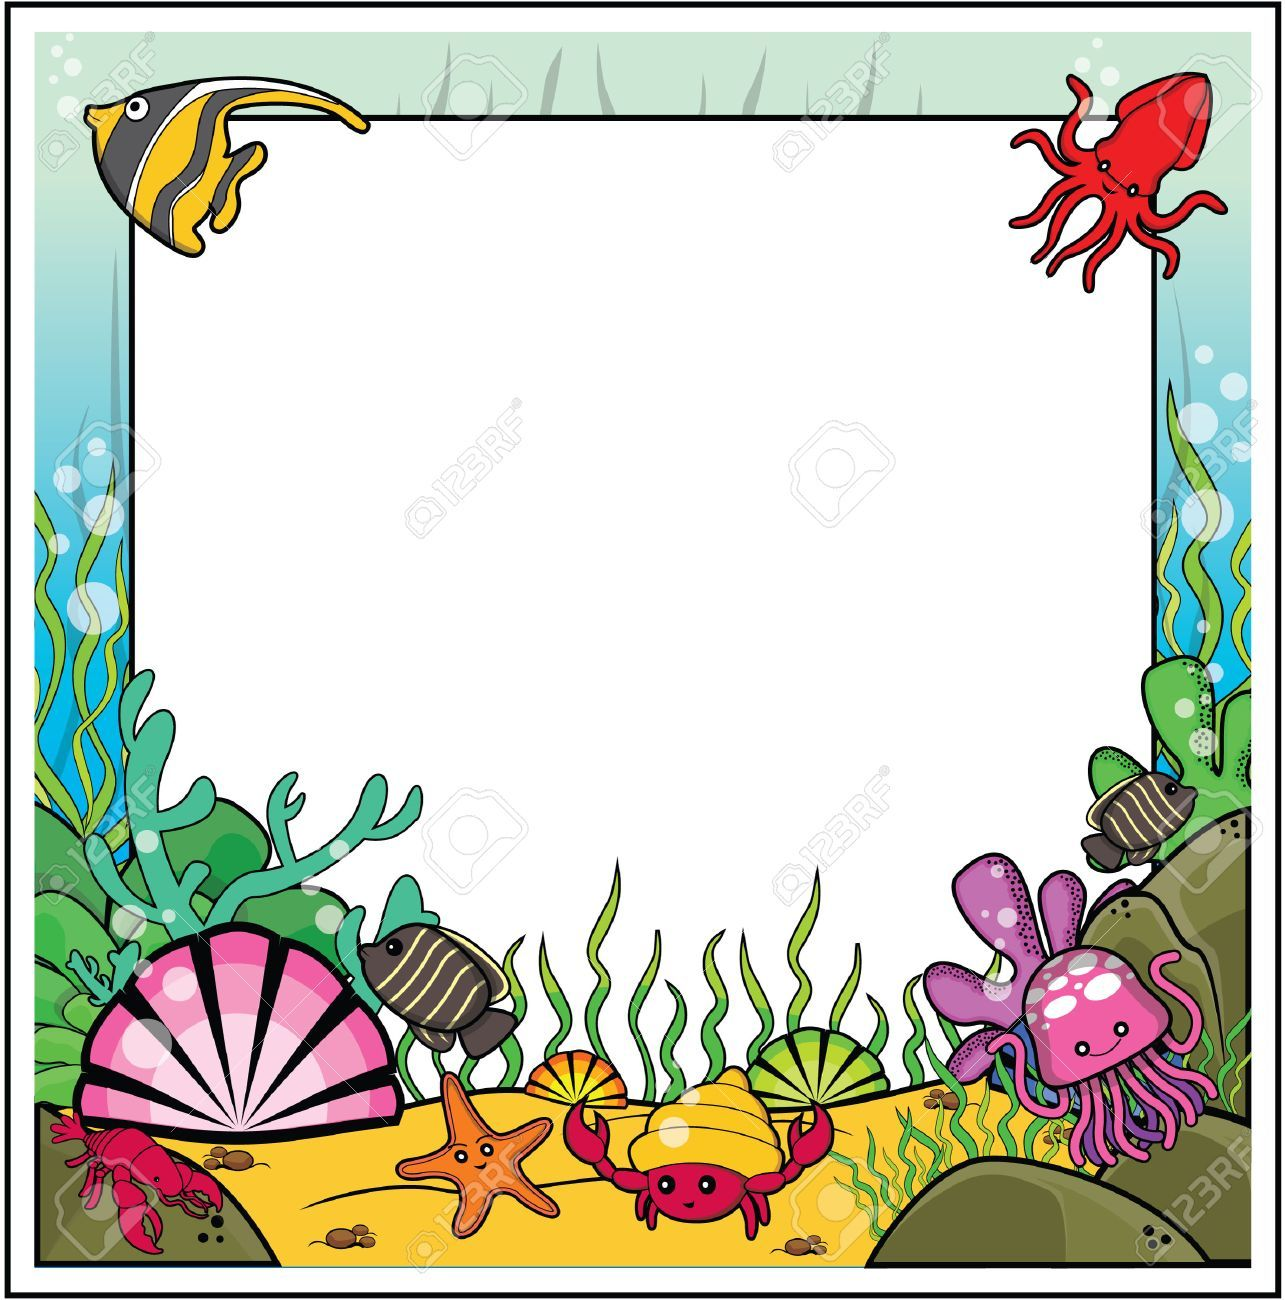 Under the sea border clipart 7 » Clipart Portal.